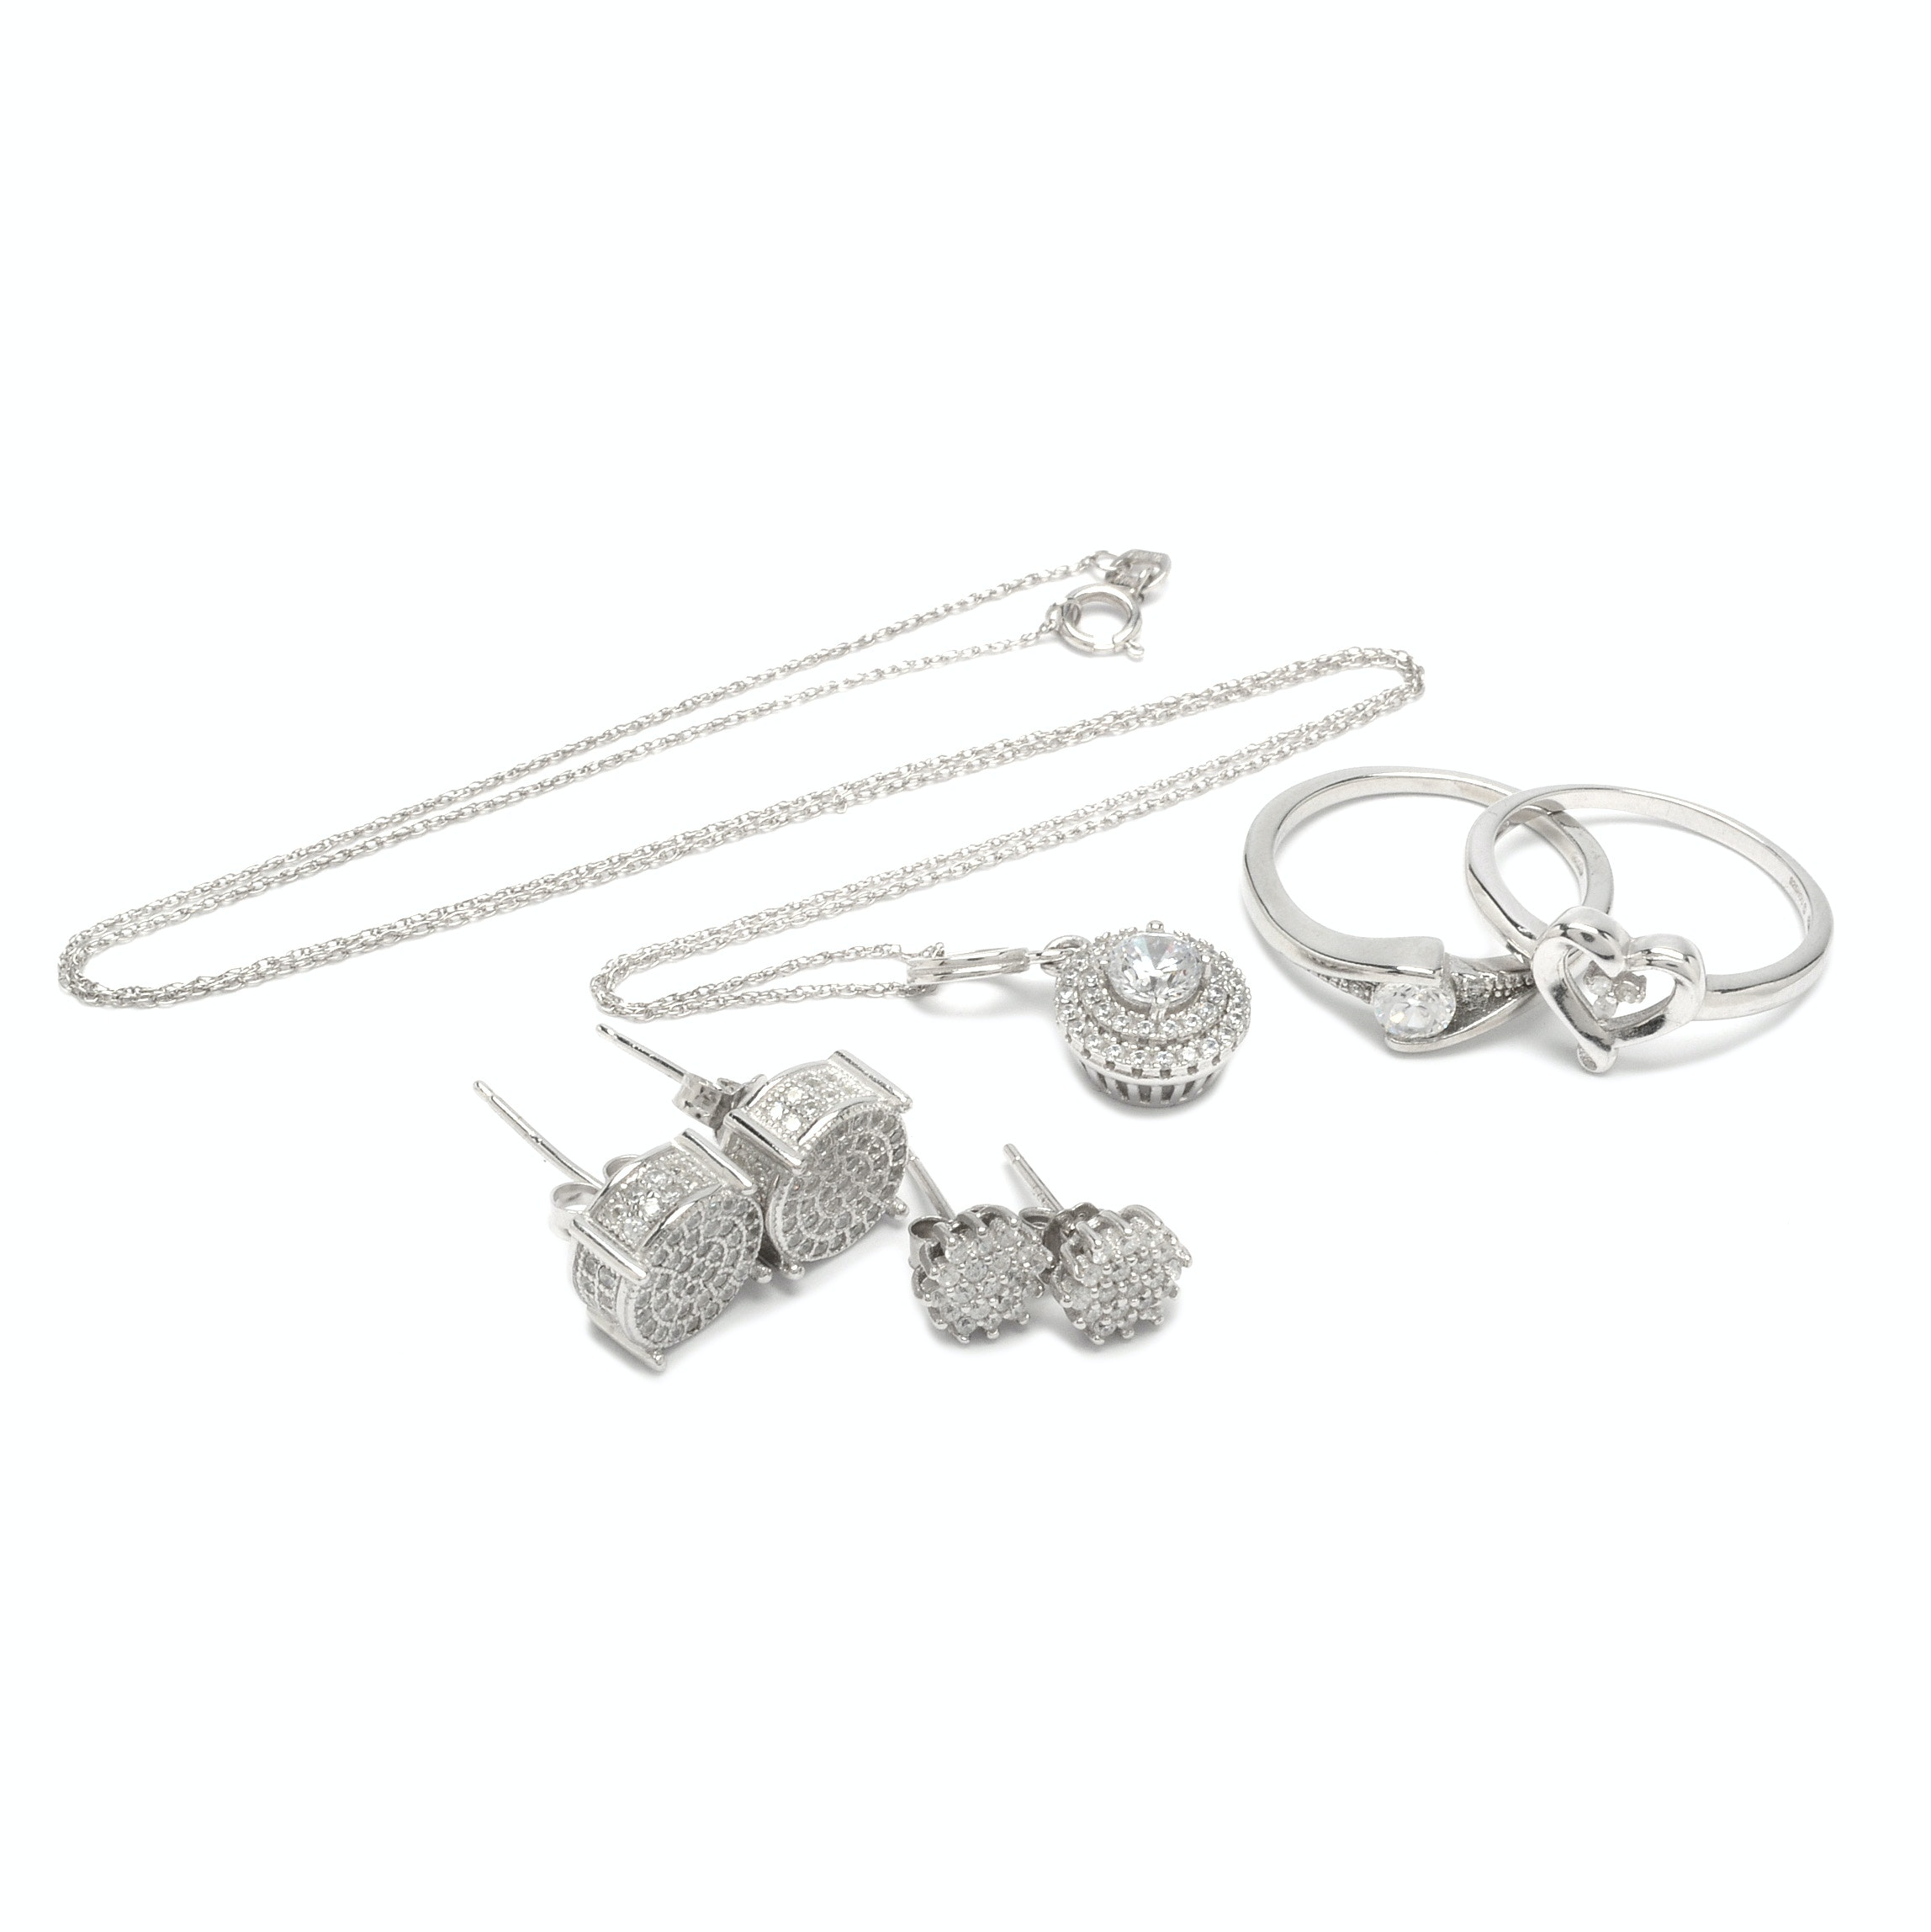 Sterling Silver Jewelry Including Cubic Zirconia and Diamond Accents